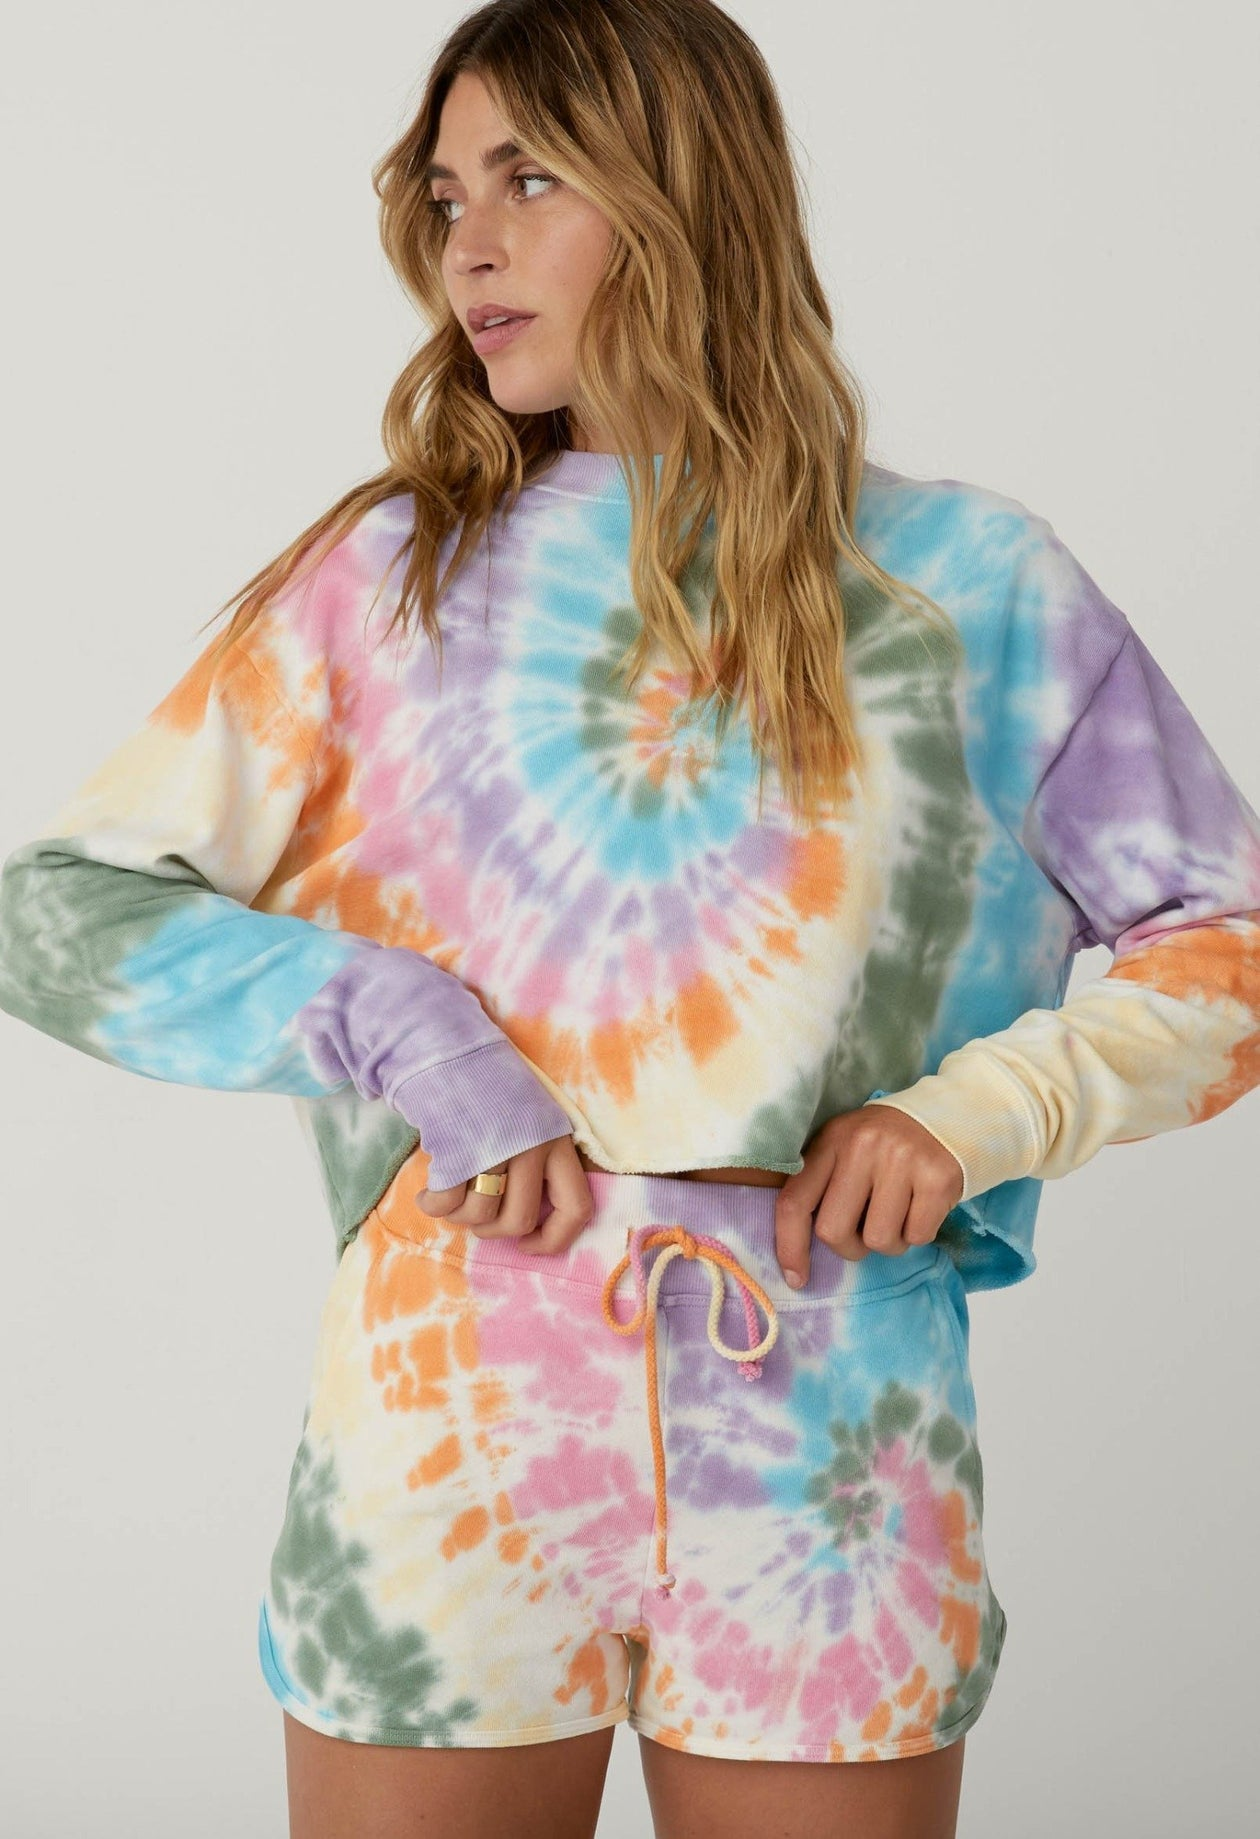 Tie Dye Crop Sweatshirt - Rainbow Spiral | Daydreamer - December 20 Capsule - Women's Clothing